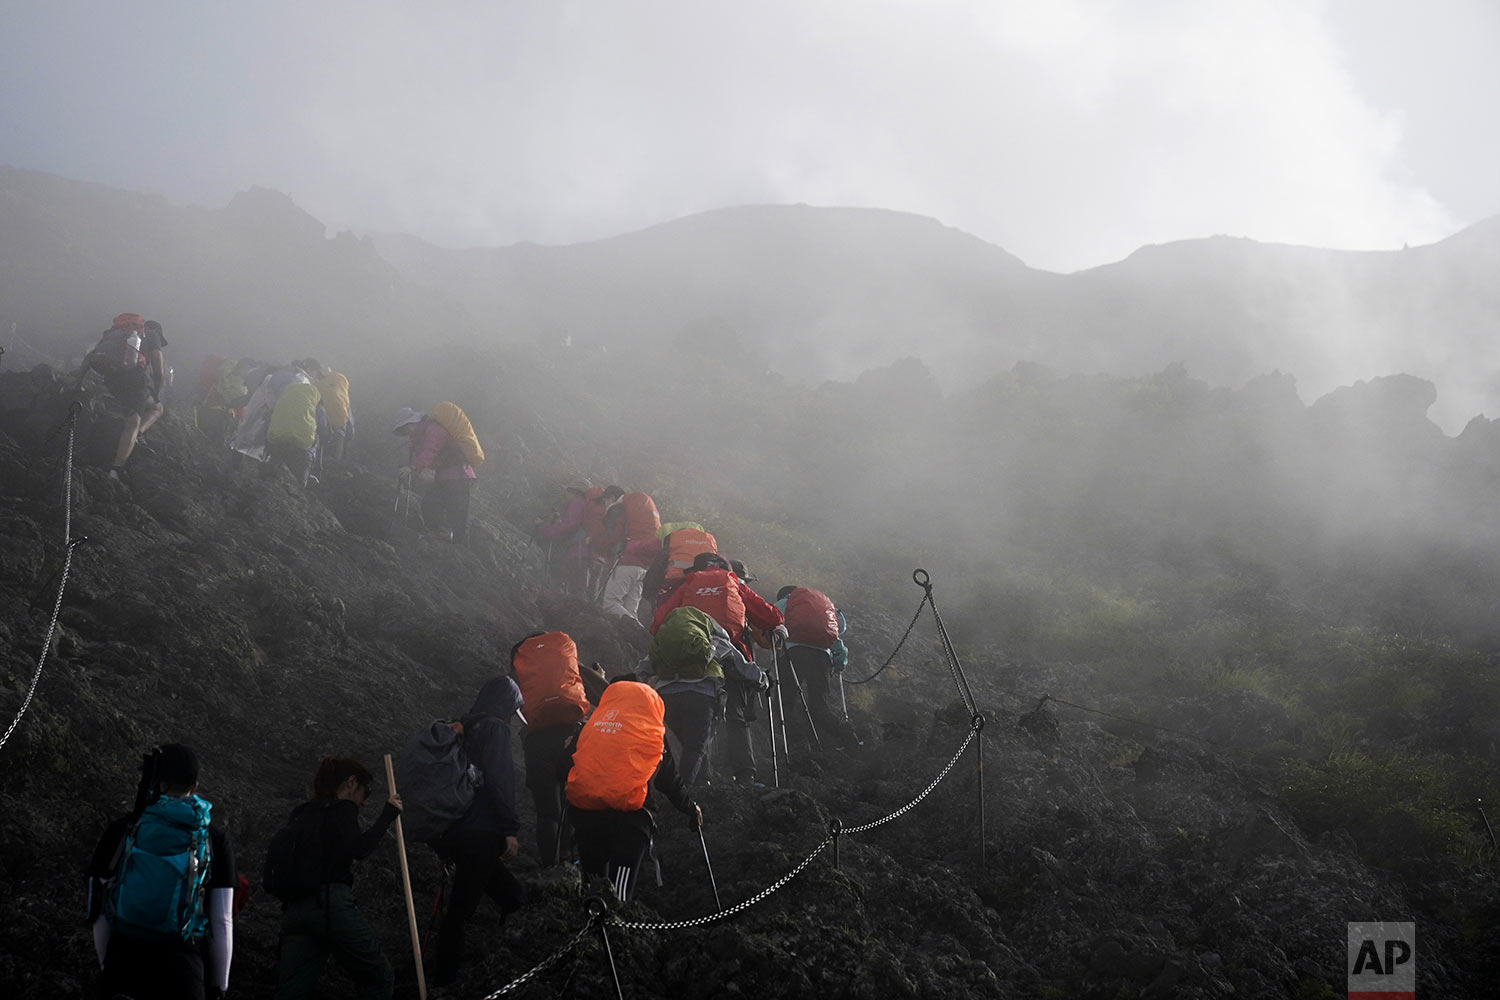 people climb through a dense fog as they make their way along the Yoshida trail towards the summit of Mount Fuji, Aug. 26, 2019, in Japan. (AP Photo/Jae C. Hong)